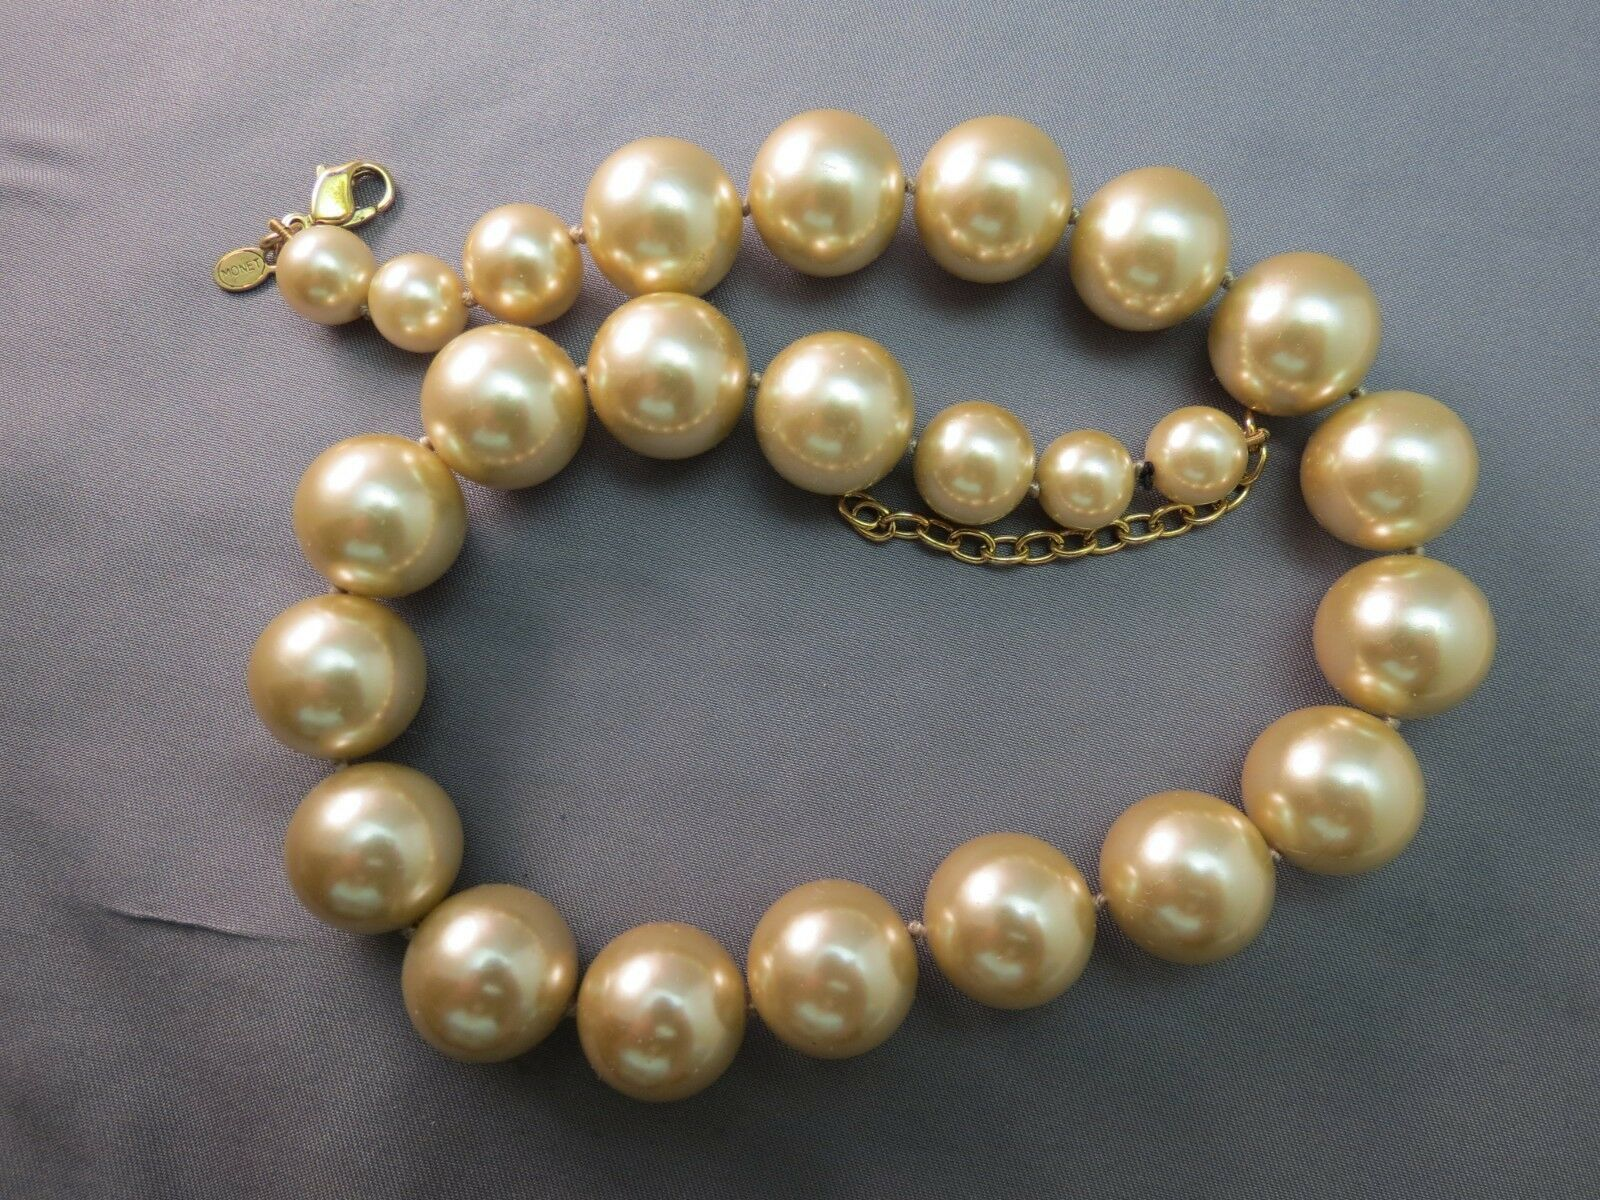 VTG Monet Big Pearl Necklace Hand Knotted Sable Cream Lobster 16mm Glass Beads image 7